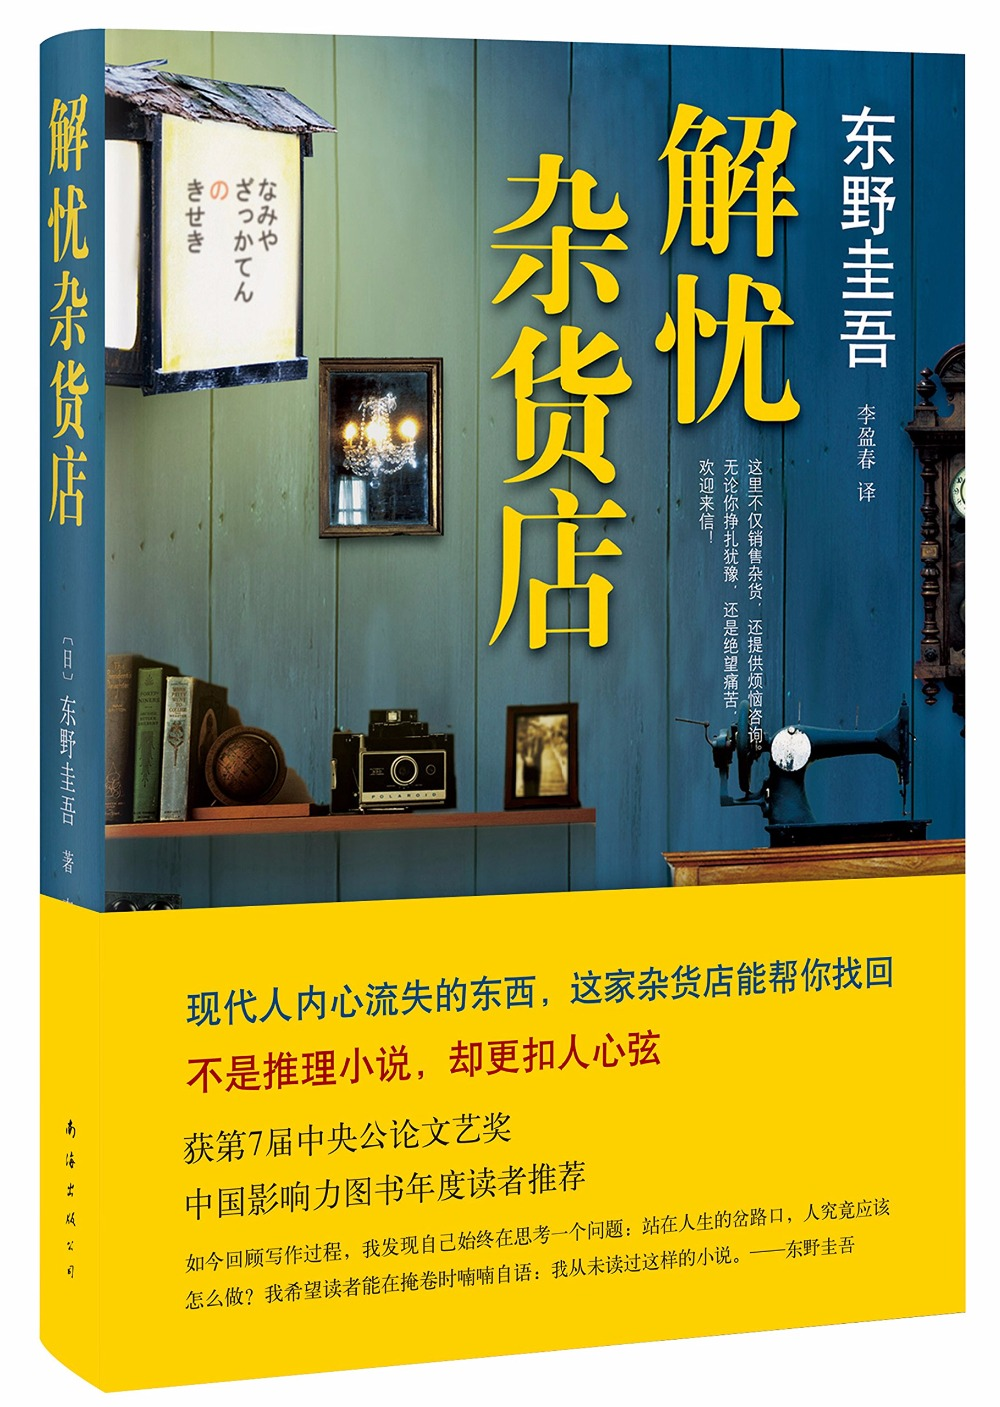 Classic Modern Literature book In Chinese : Unworried Store Mystery fiction book Chinese fiction booksClassic Modern Literature book In Chinese : Unworried Store Mystery fiction book Chinese fiction books